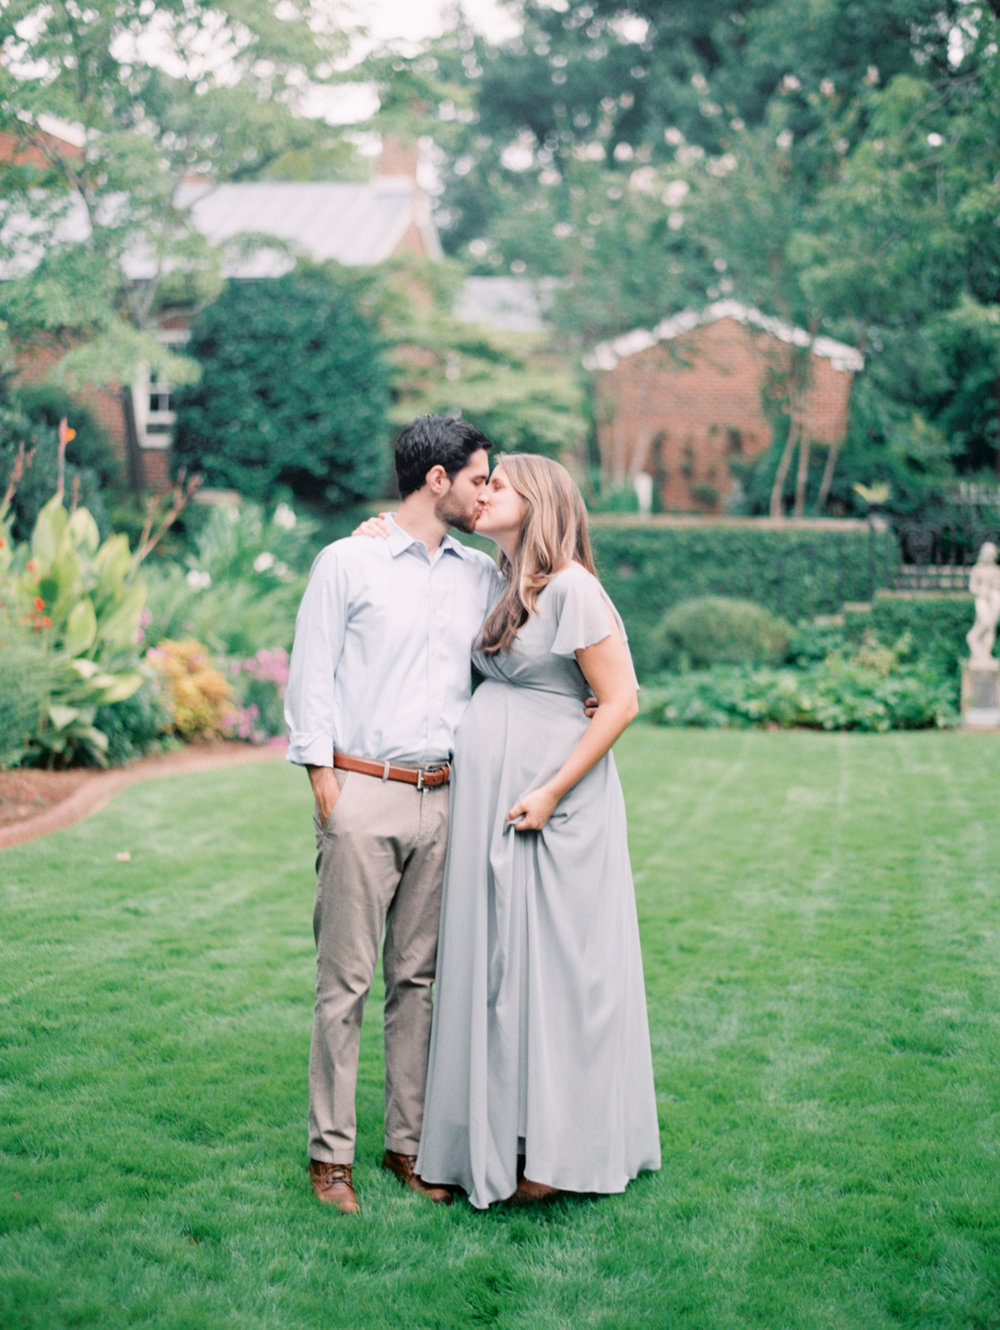 shackleford maternity four corners photography athens maternity photographer anna shackleford photography atlanta film photographer maternity photography-11.jpg